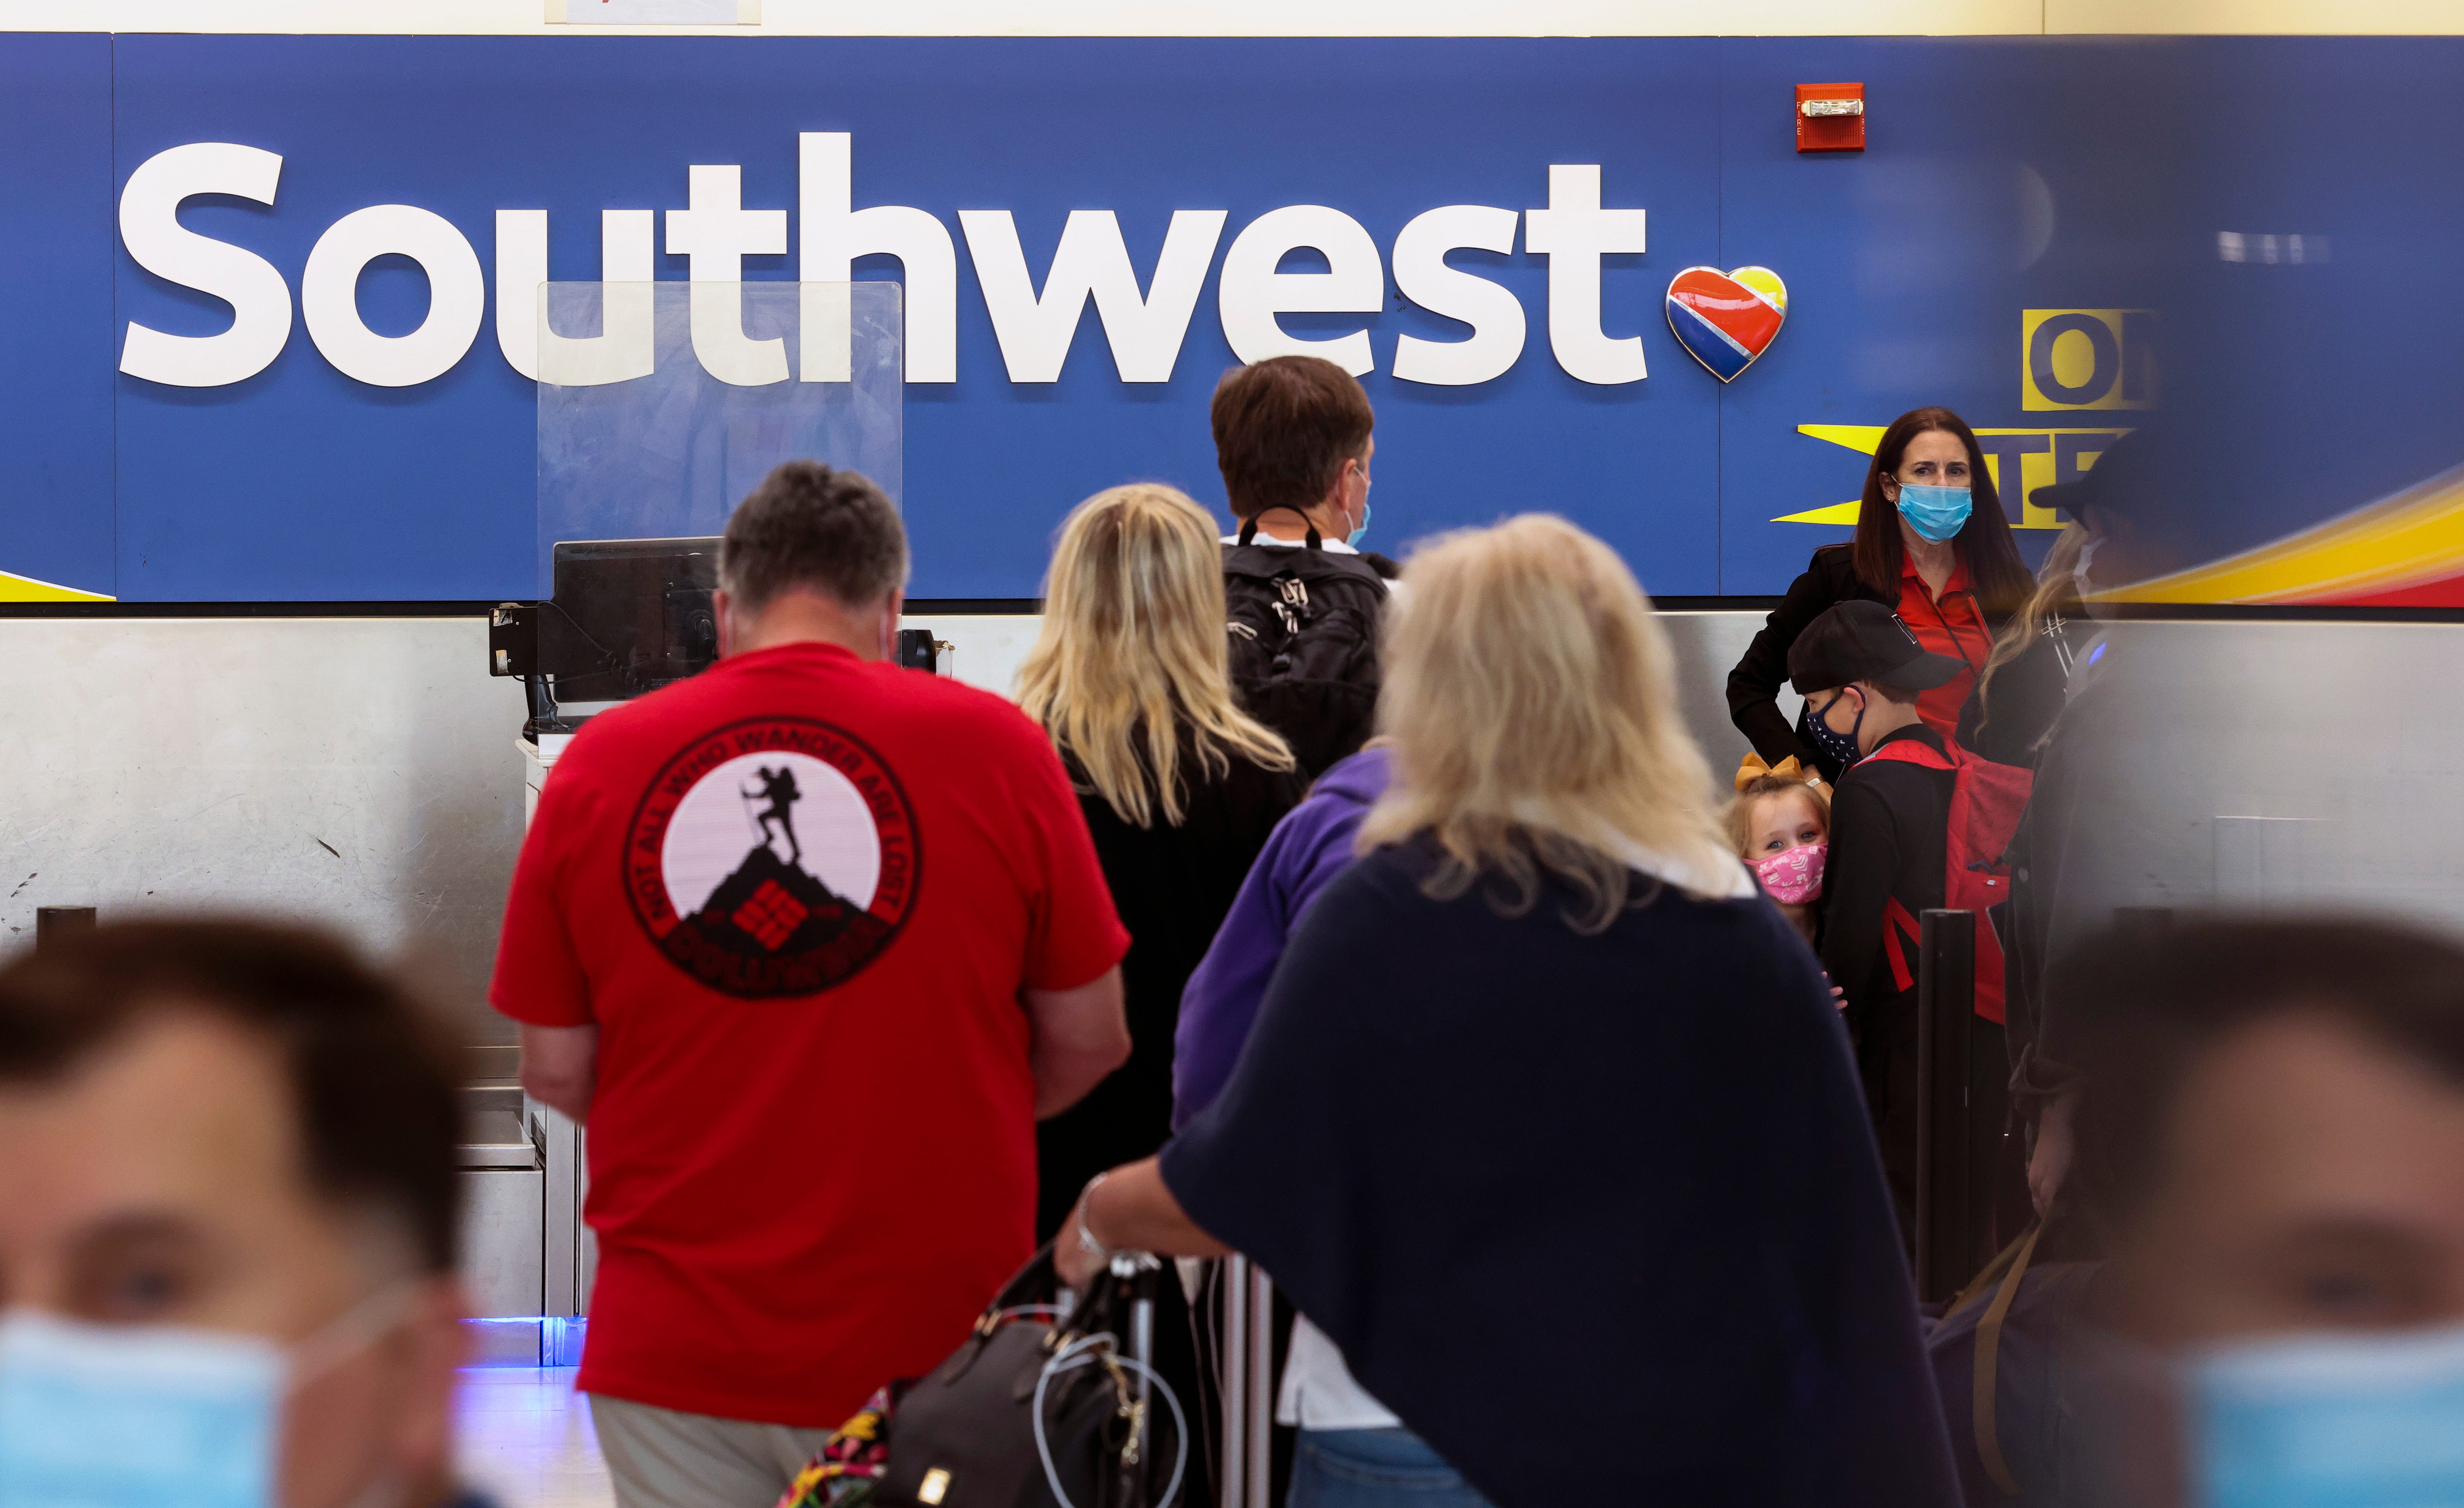 Southwest is (quietly) doling out  we re sorry  vouchers to travelers caught in cancellation chaos. Here s how to get one